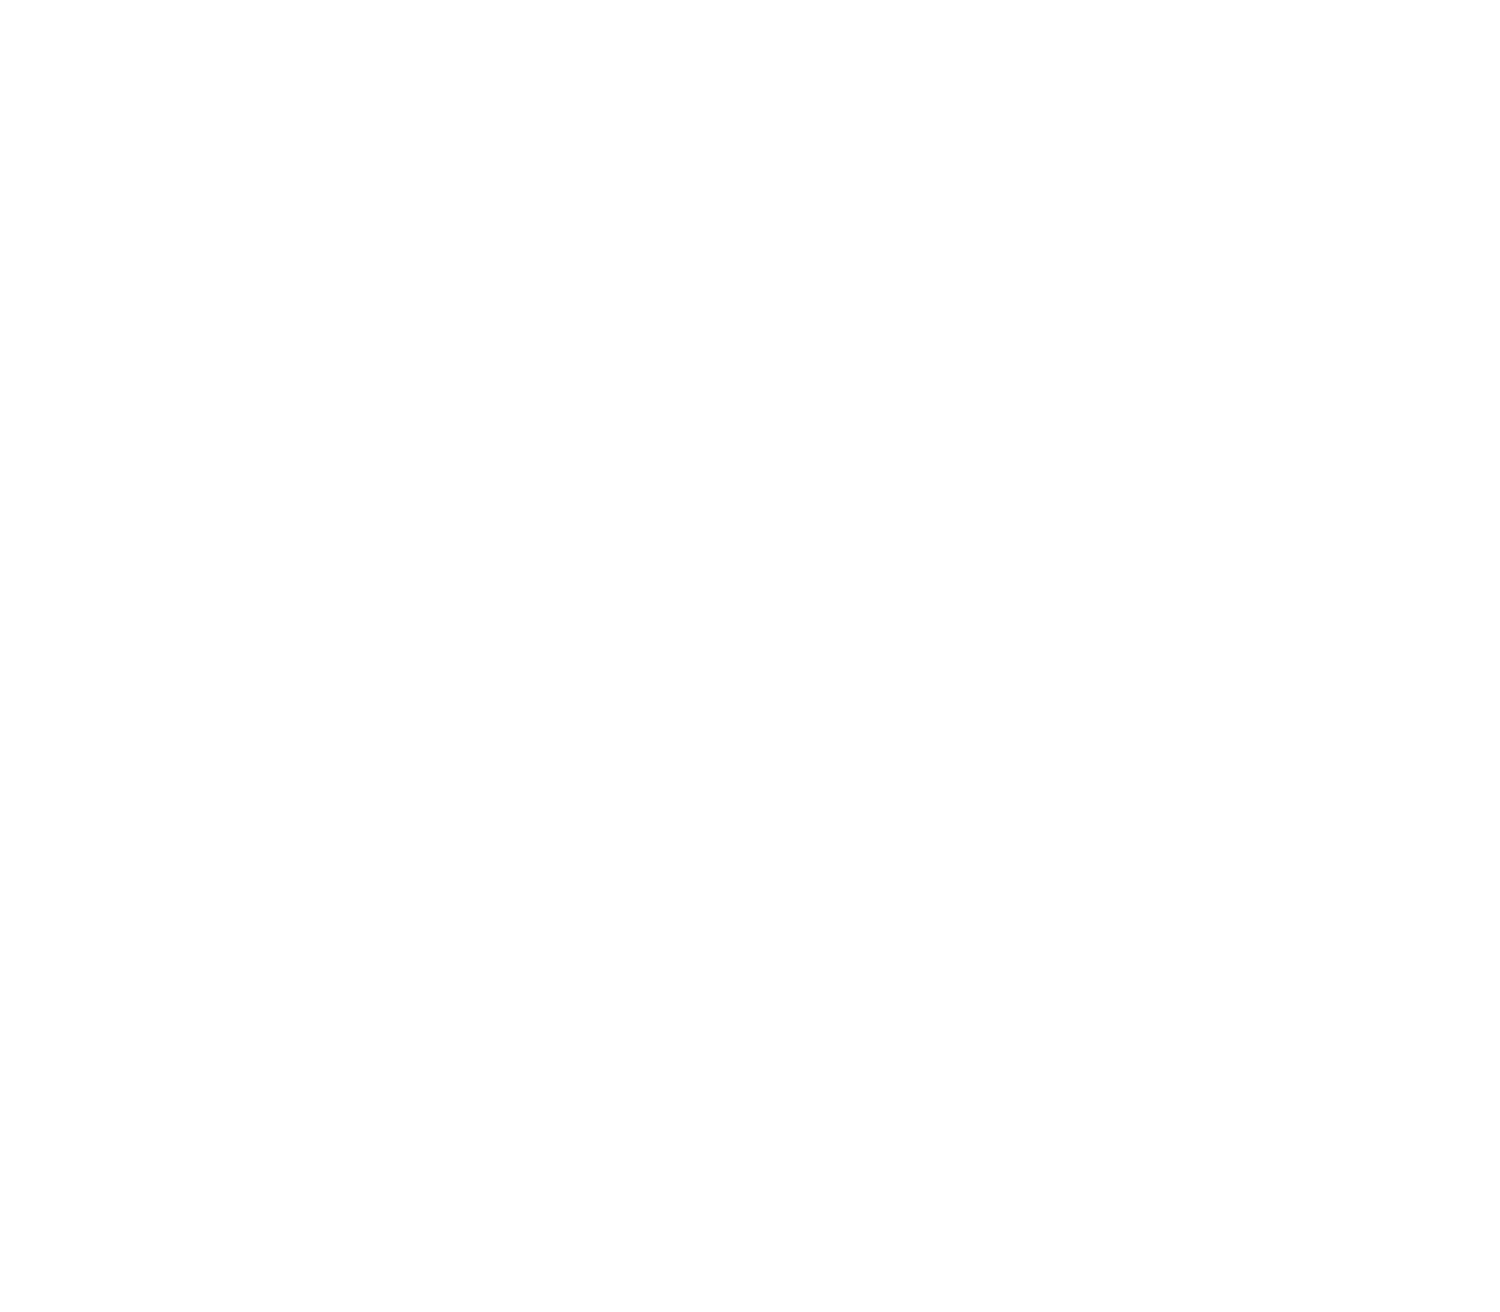 Kind Collective